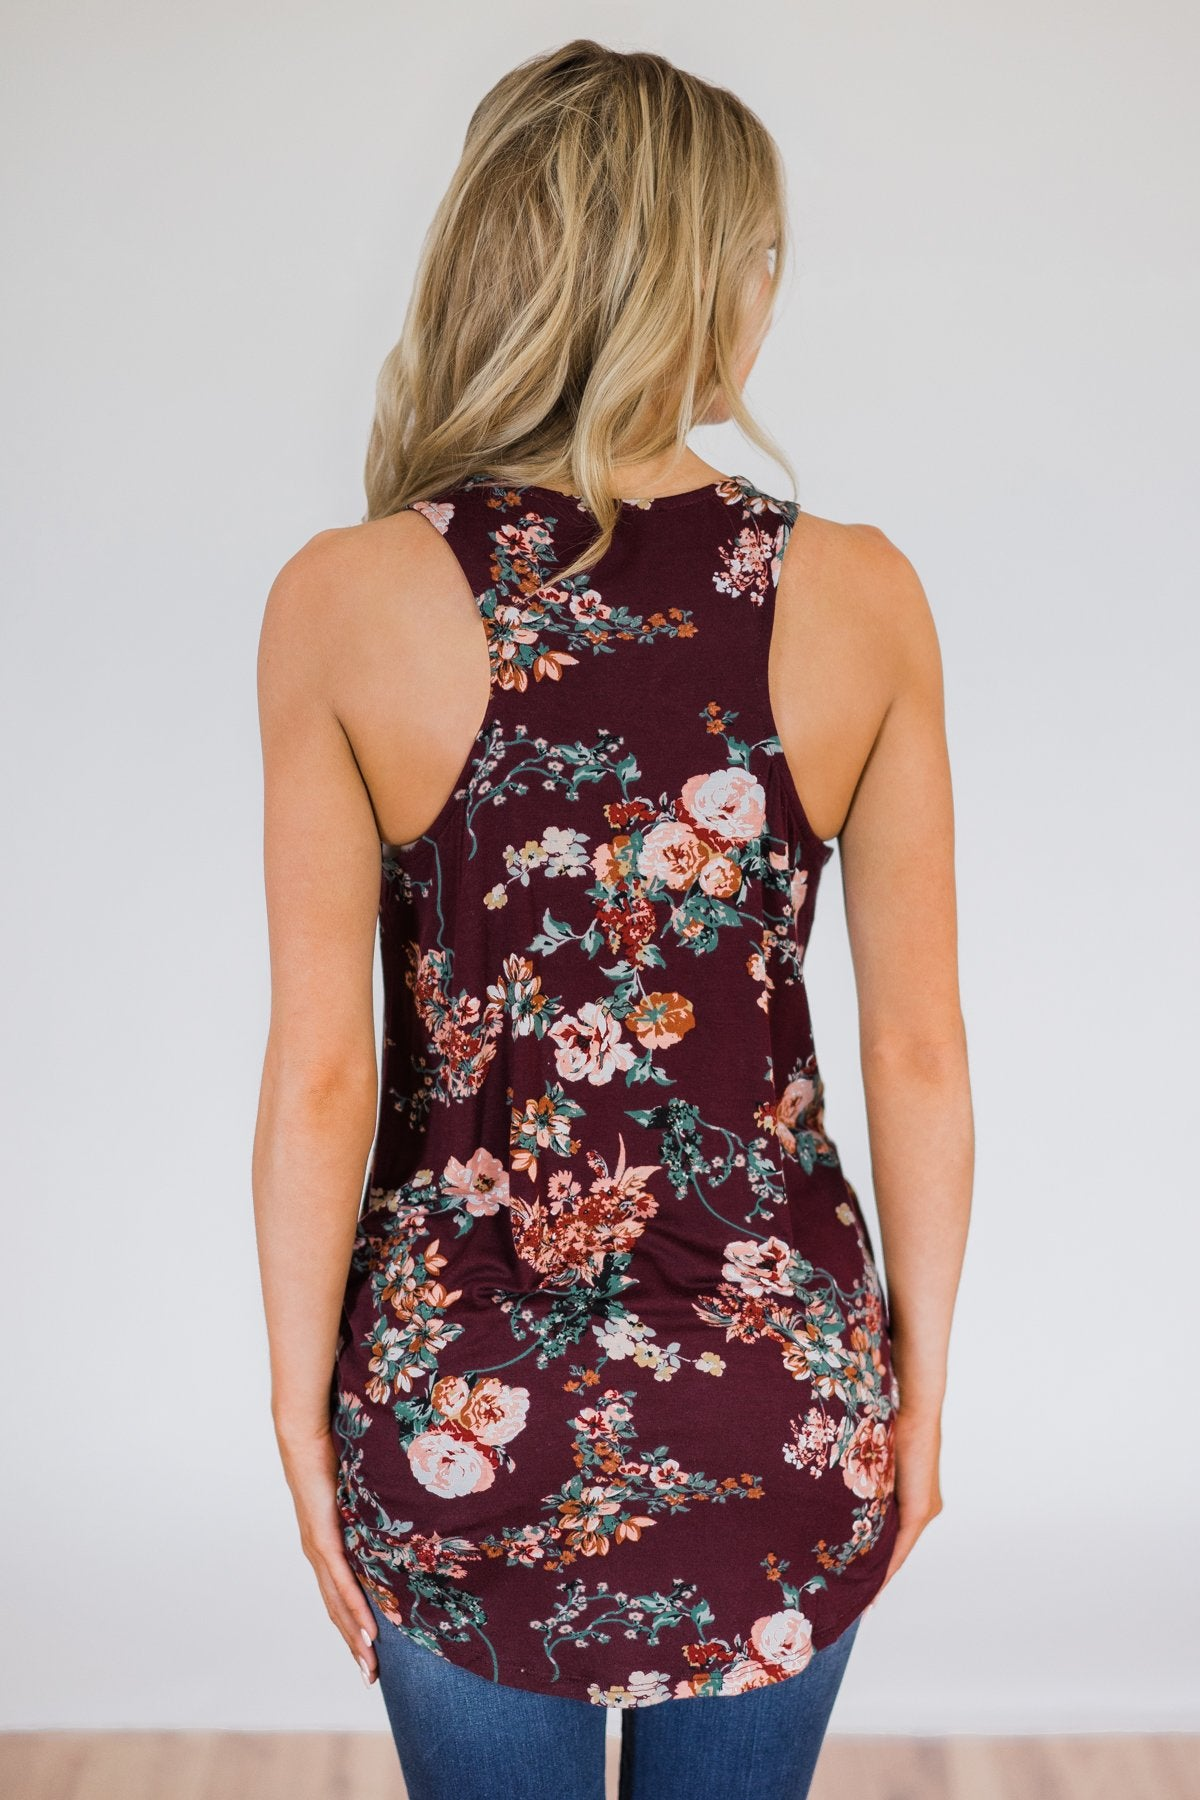 Feeling Fantastic in Floral- Burgundy